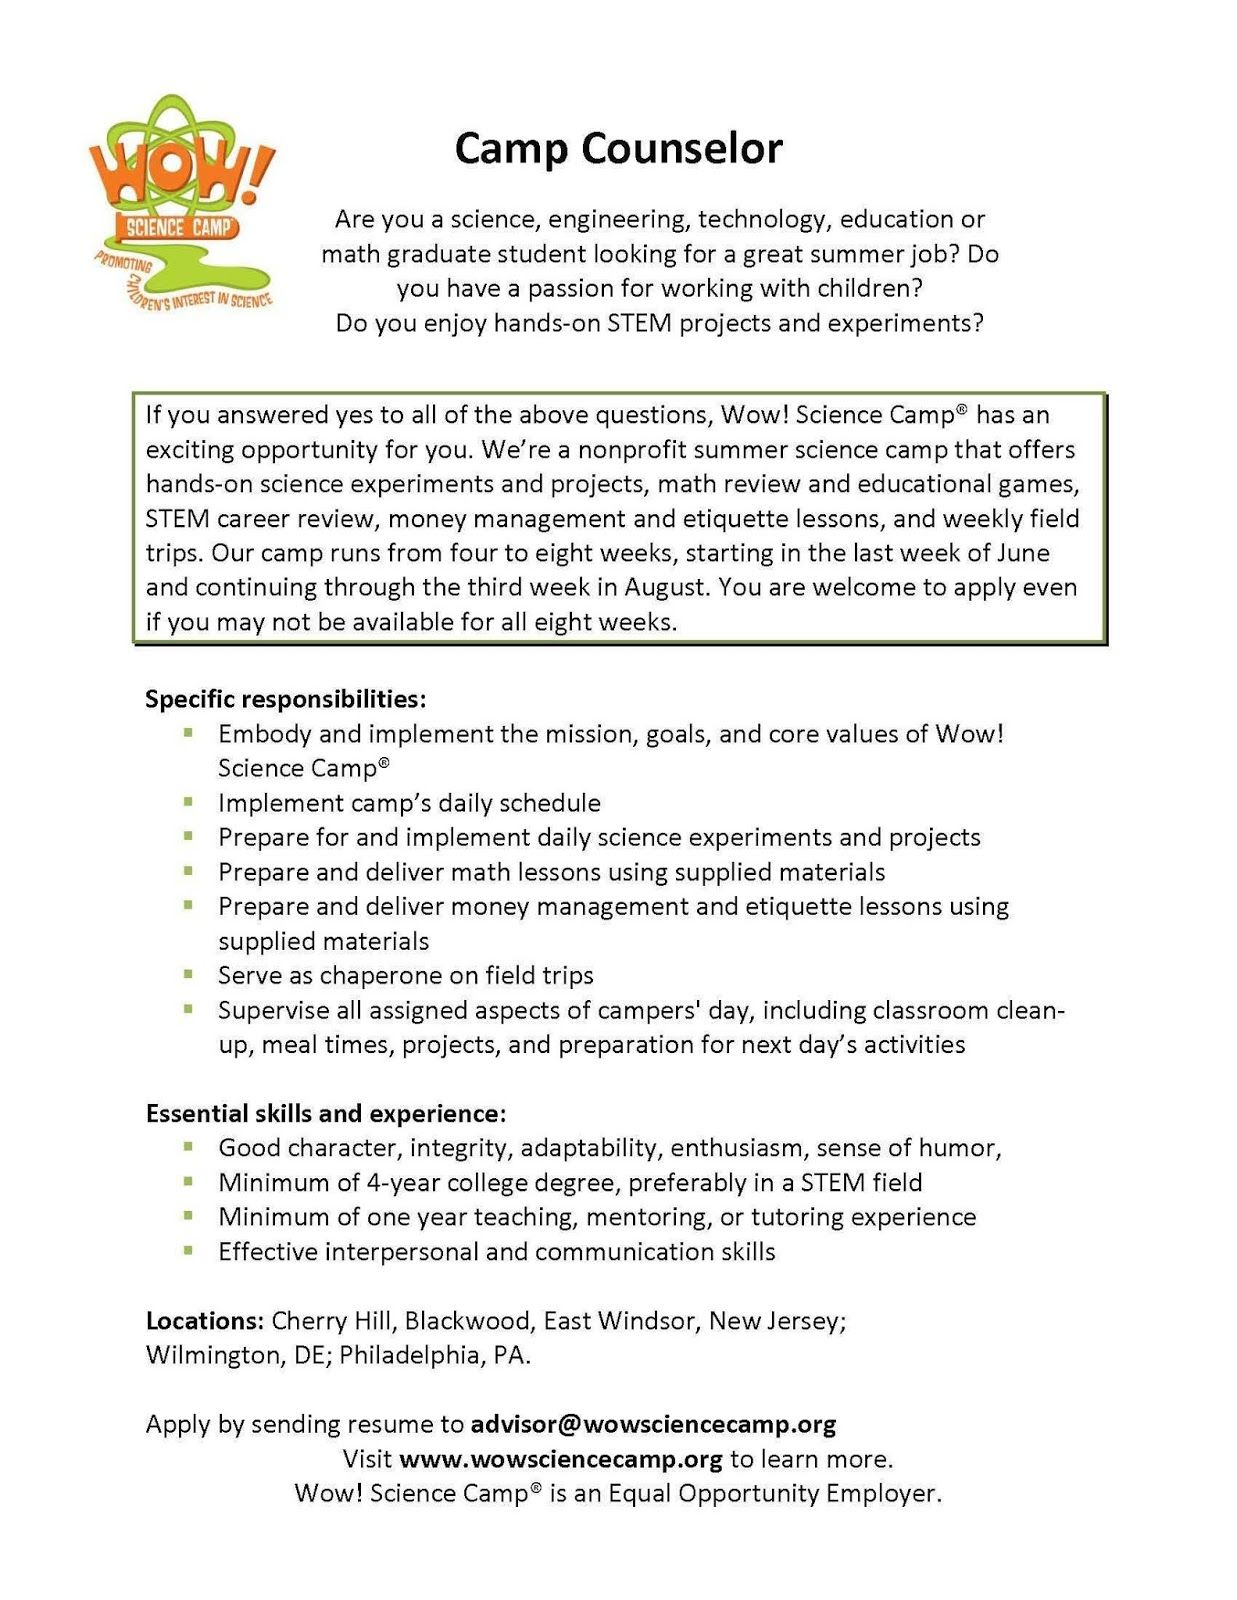 school counselor resume sample cv examples behavioral skills for big four professional Resume Day Camp Counselor Resume